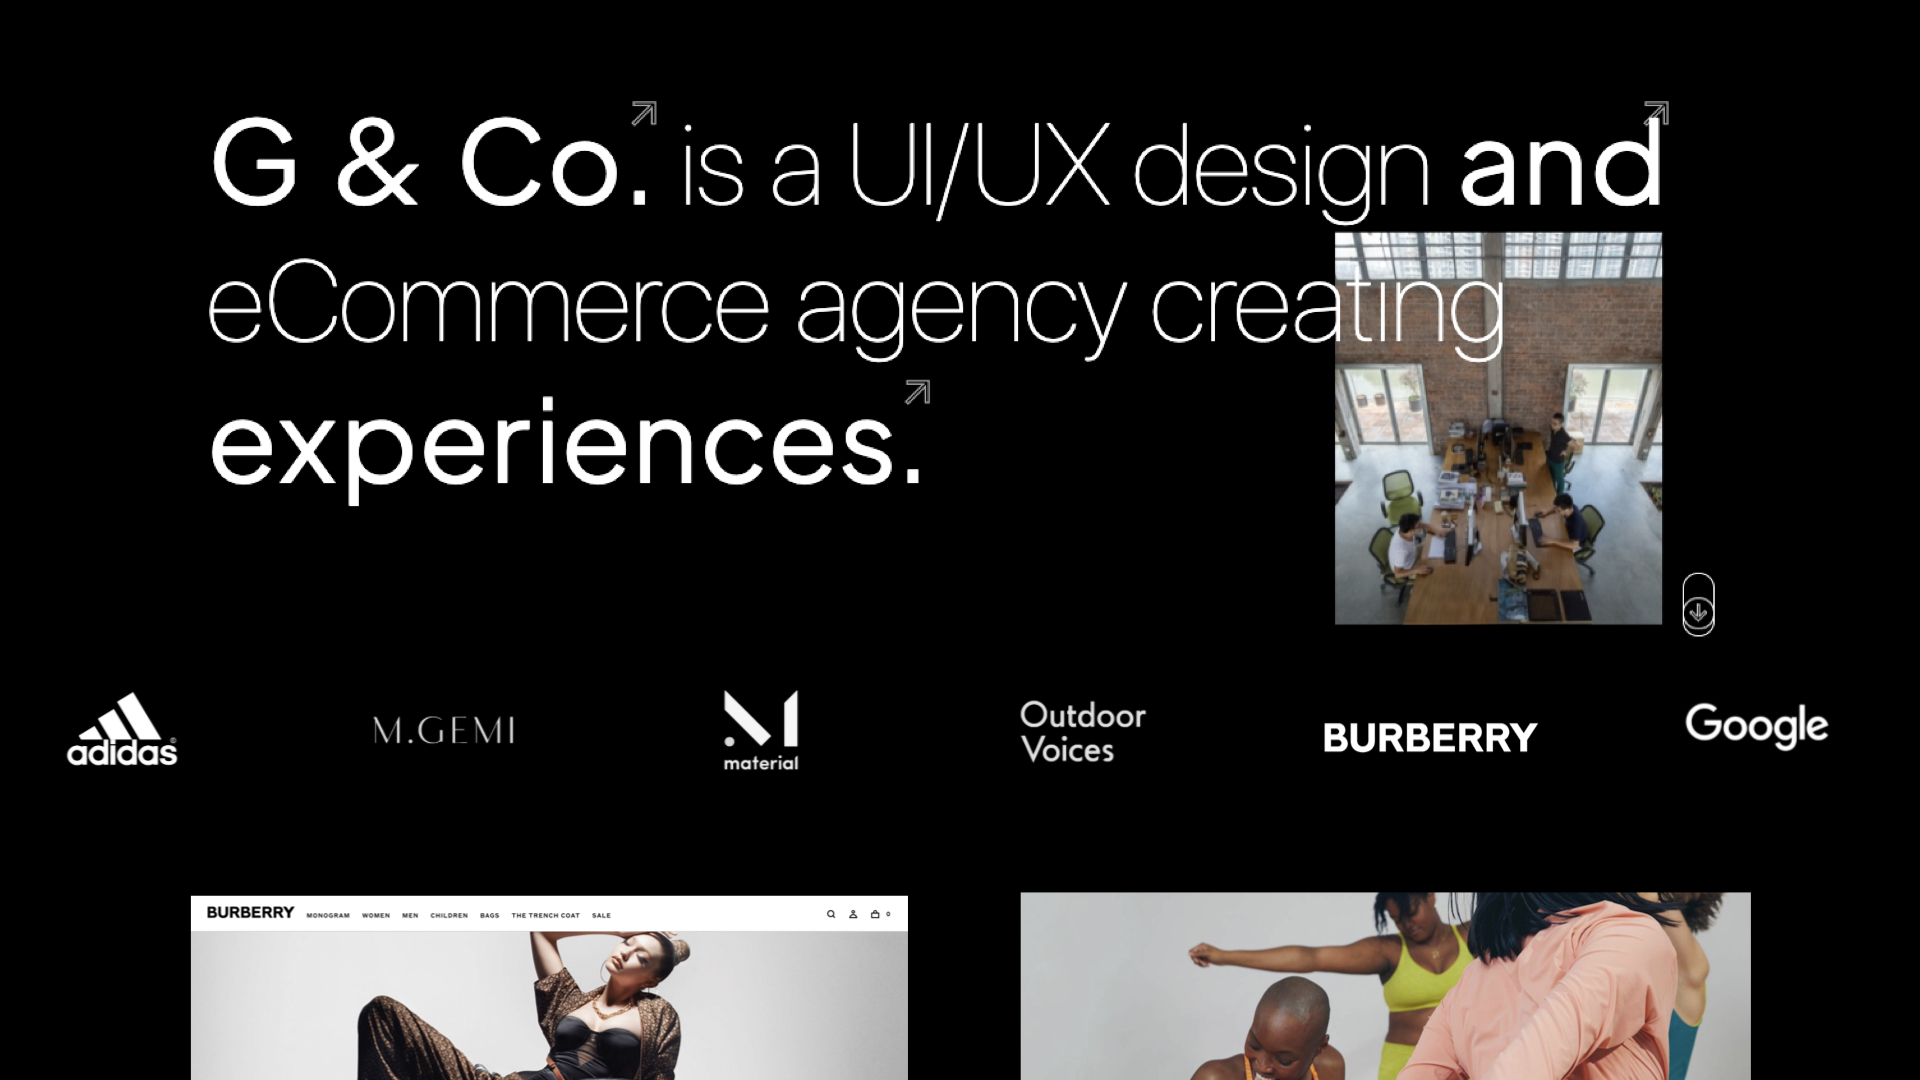 G & Co. is a DTC marketing agency: An advertising agency's take on Warby Parker's marketing and advertising strategy